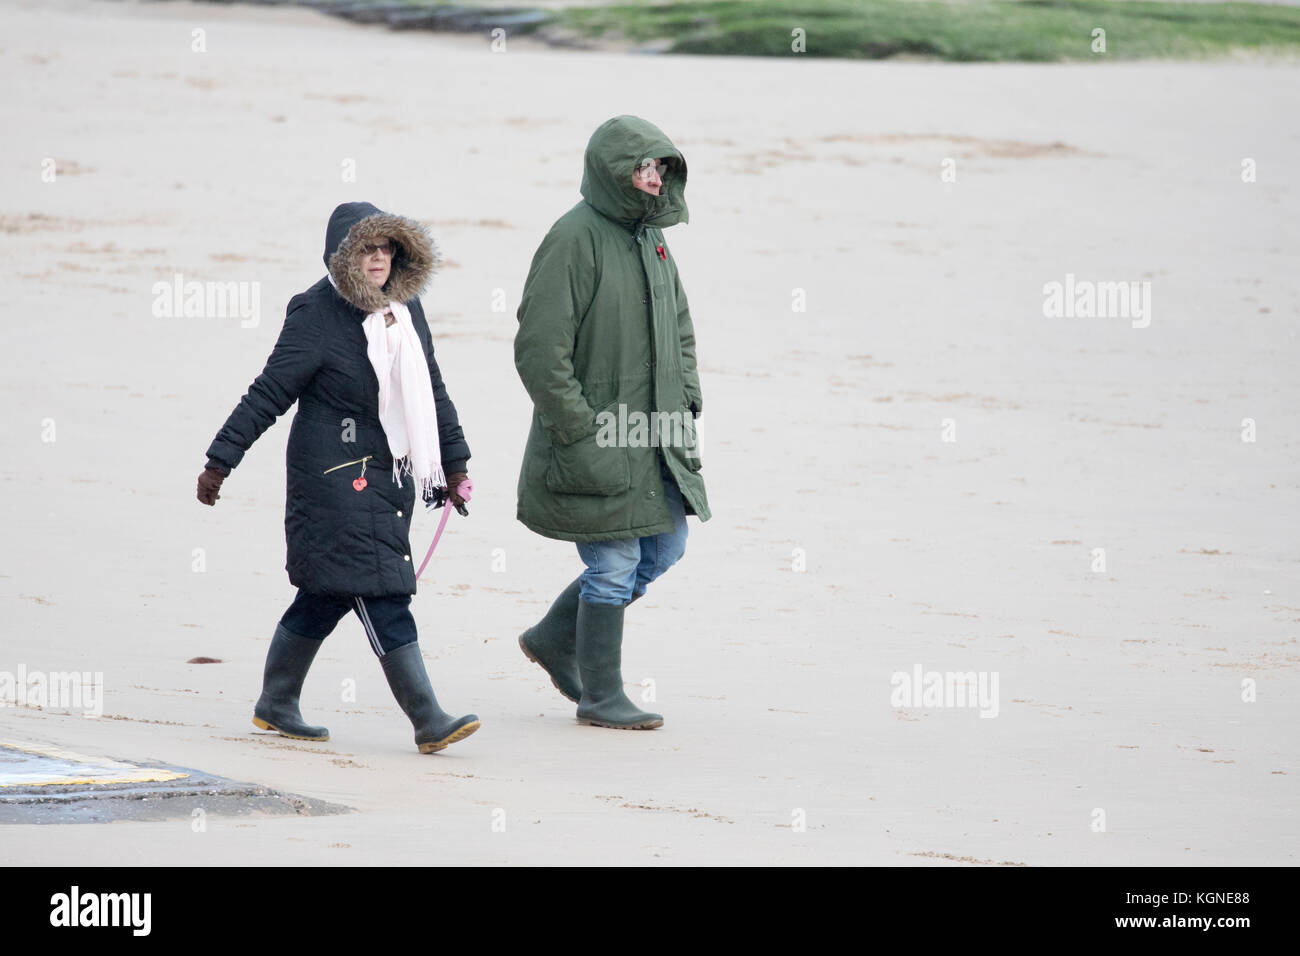 Dog walkers braving the cold windy conditions walking along the sandy shoreline and beach at New Brighton on Merseyside, - Stock Image